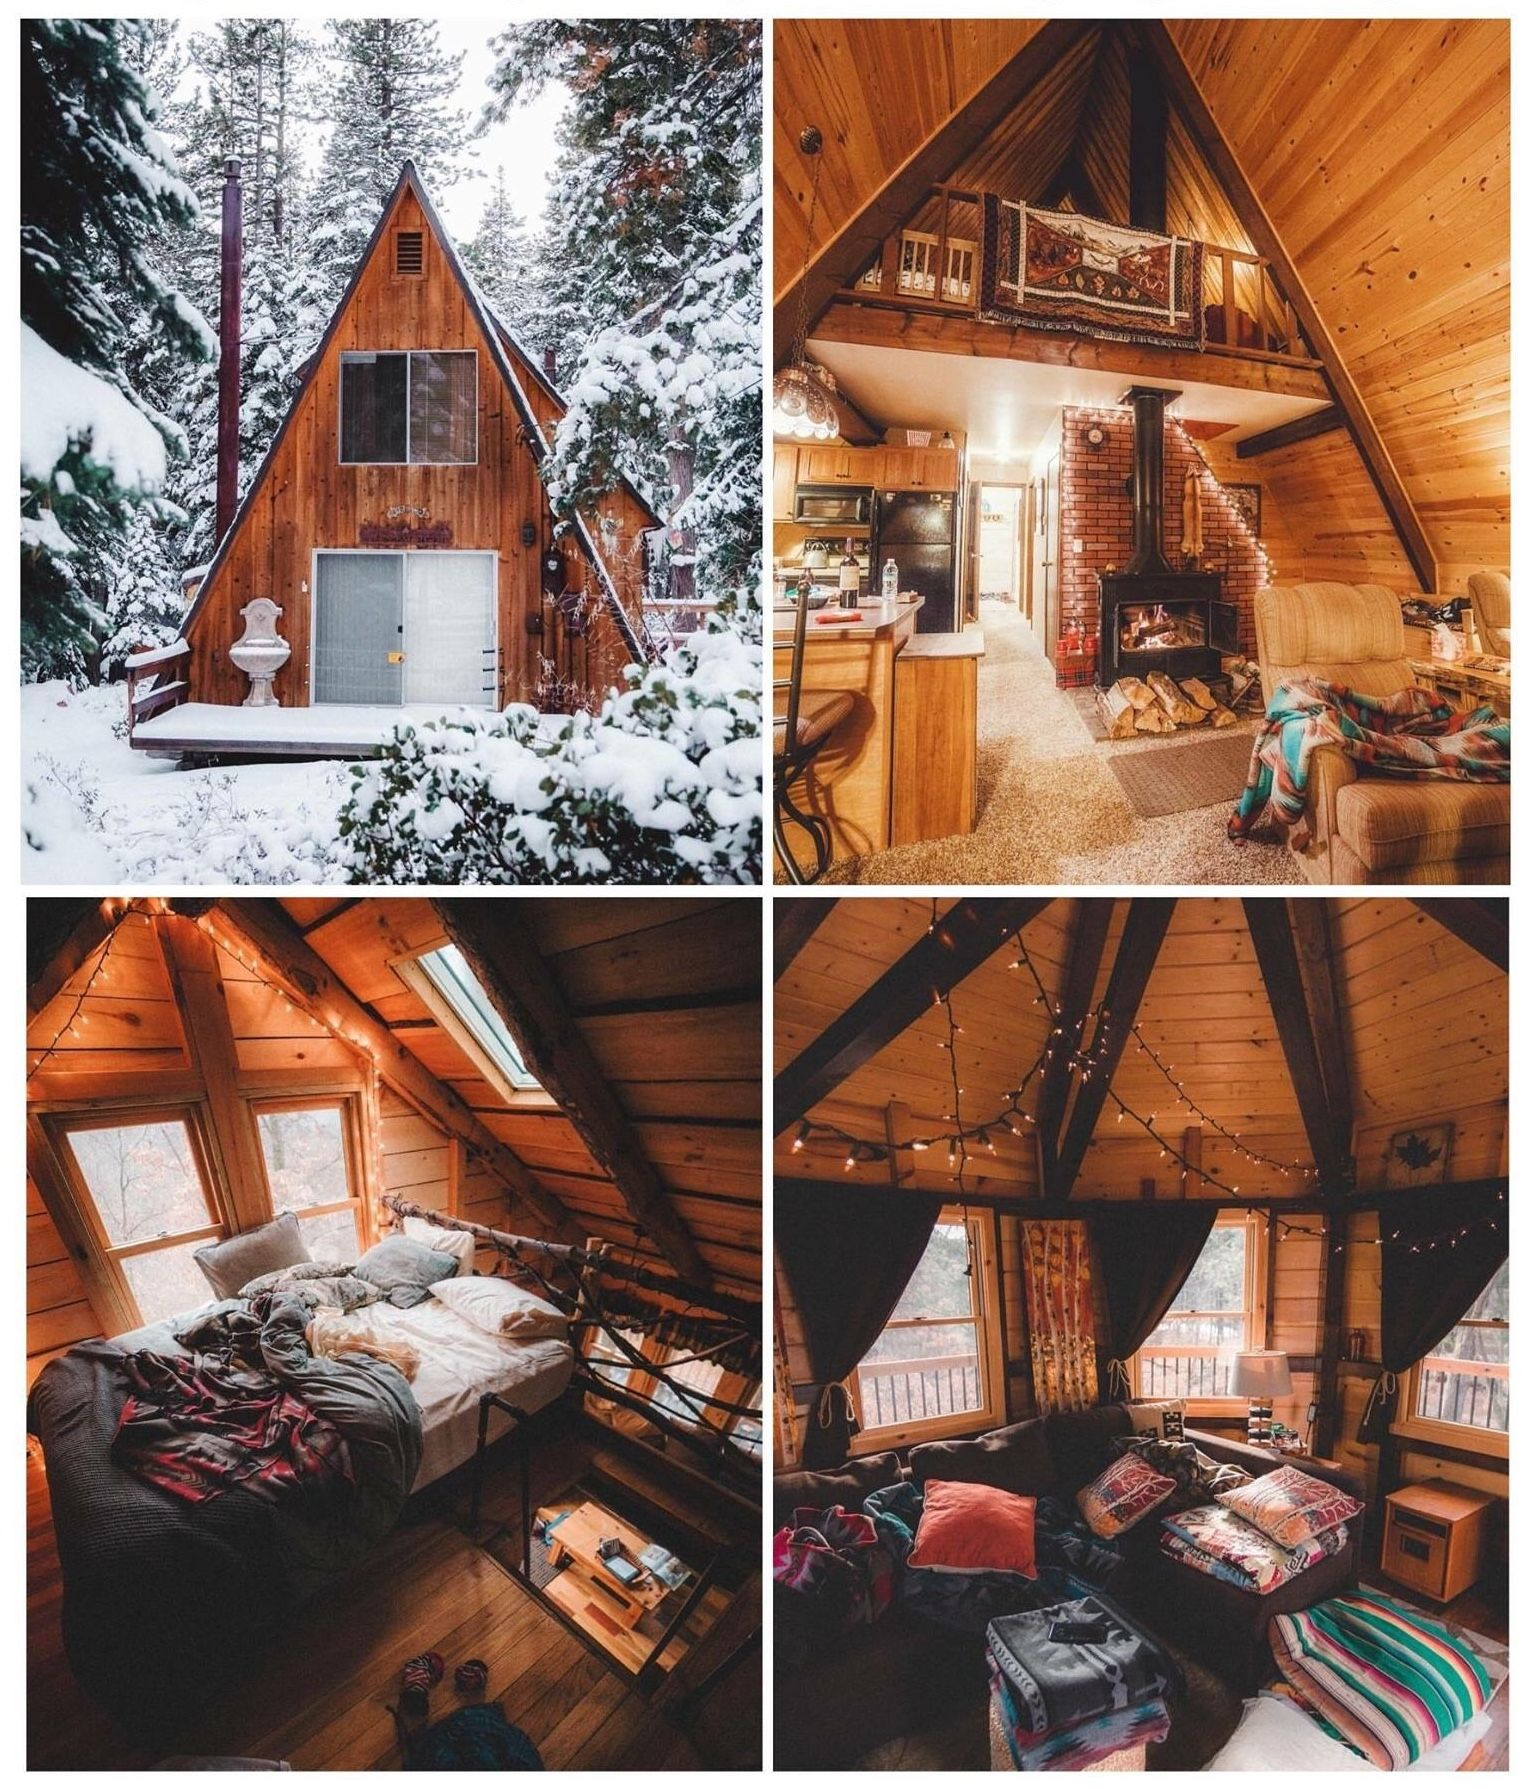 Warm Cozy Home: Like A Comfy Timber TENT...A-Frame